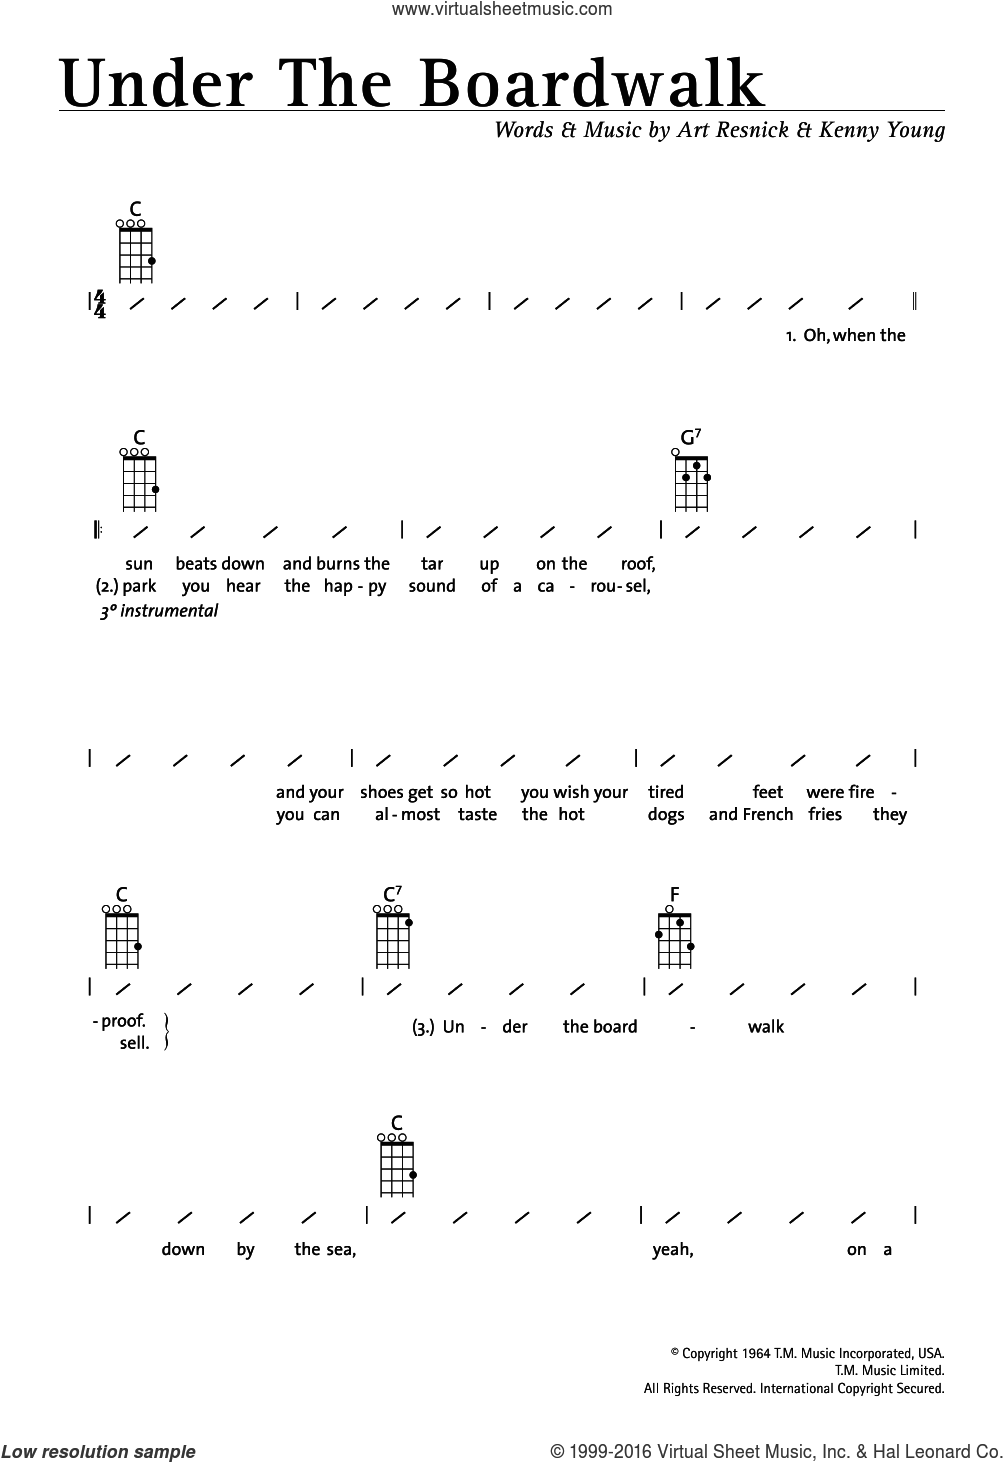 Under The Boardwalk sheet music for ukulele (chords) by The Drifters, Art Resnick and Kenny Young, intermediate skill level